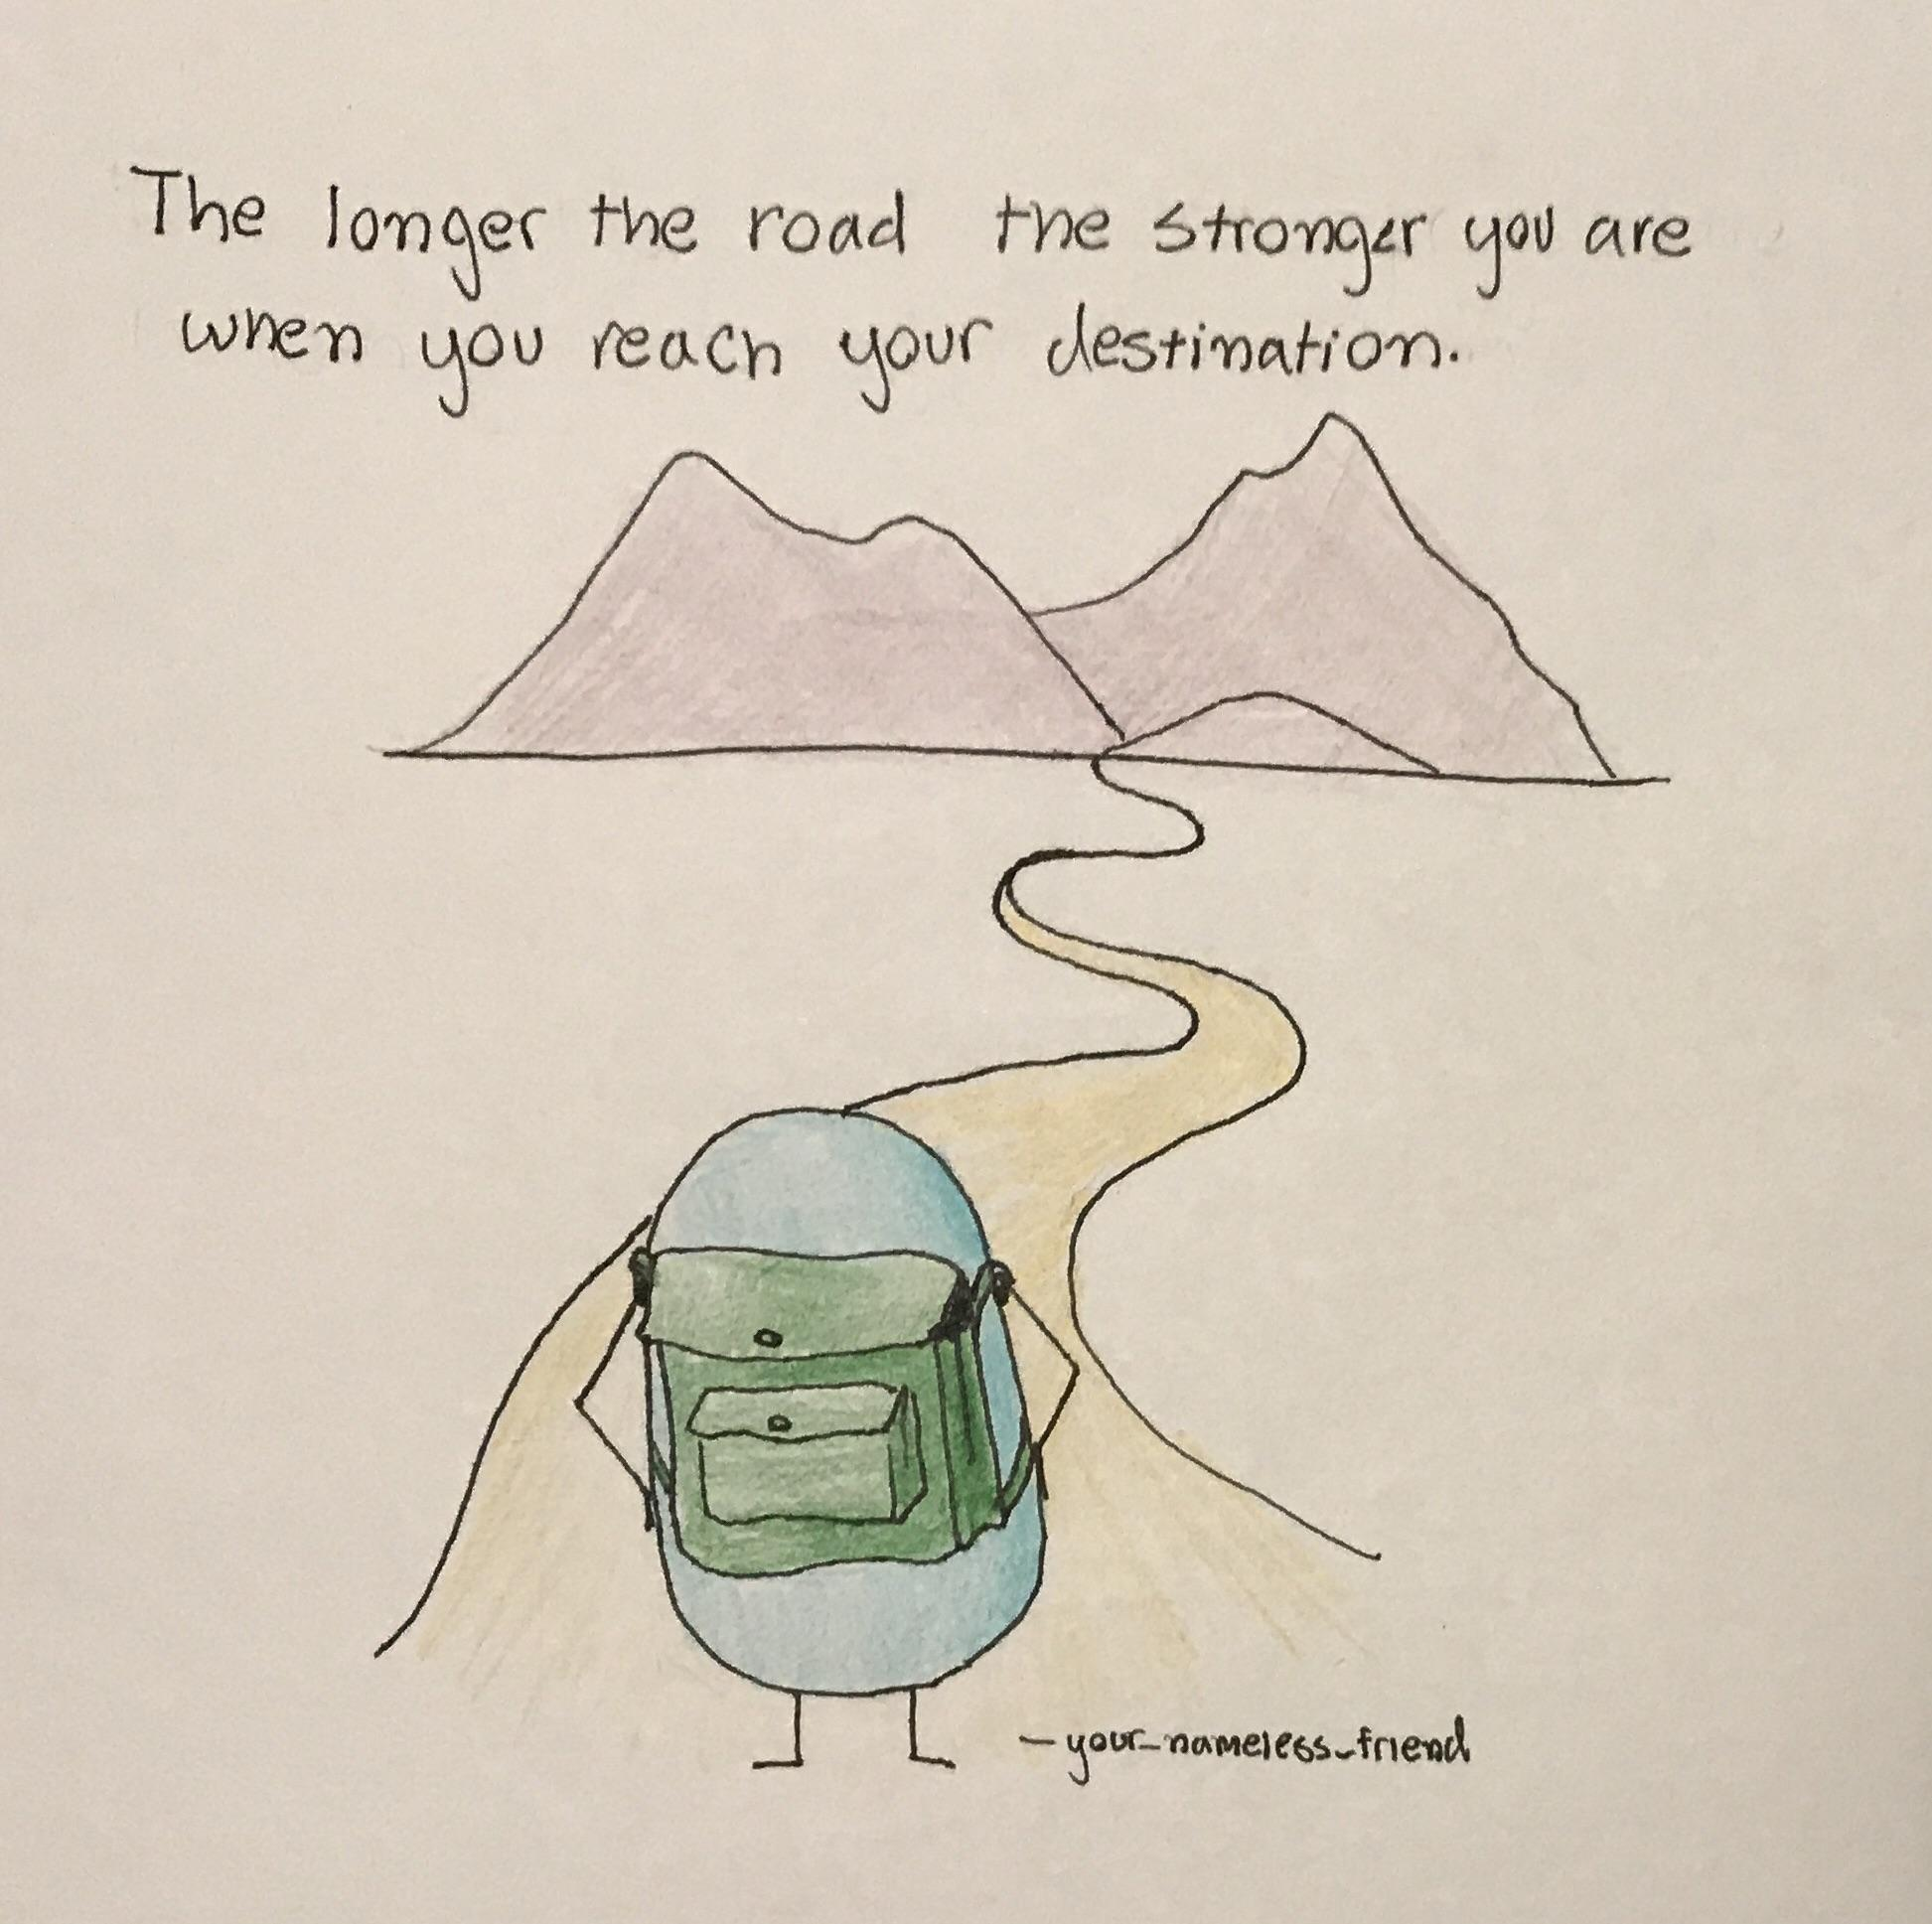 [image] long roads